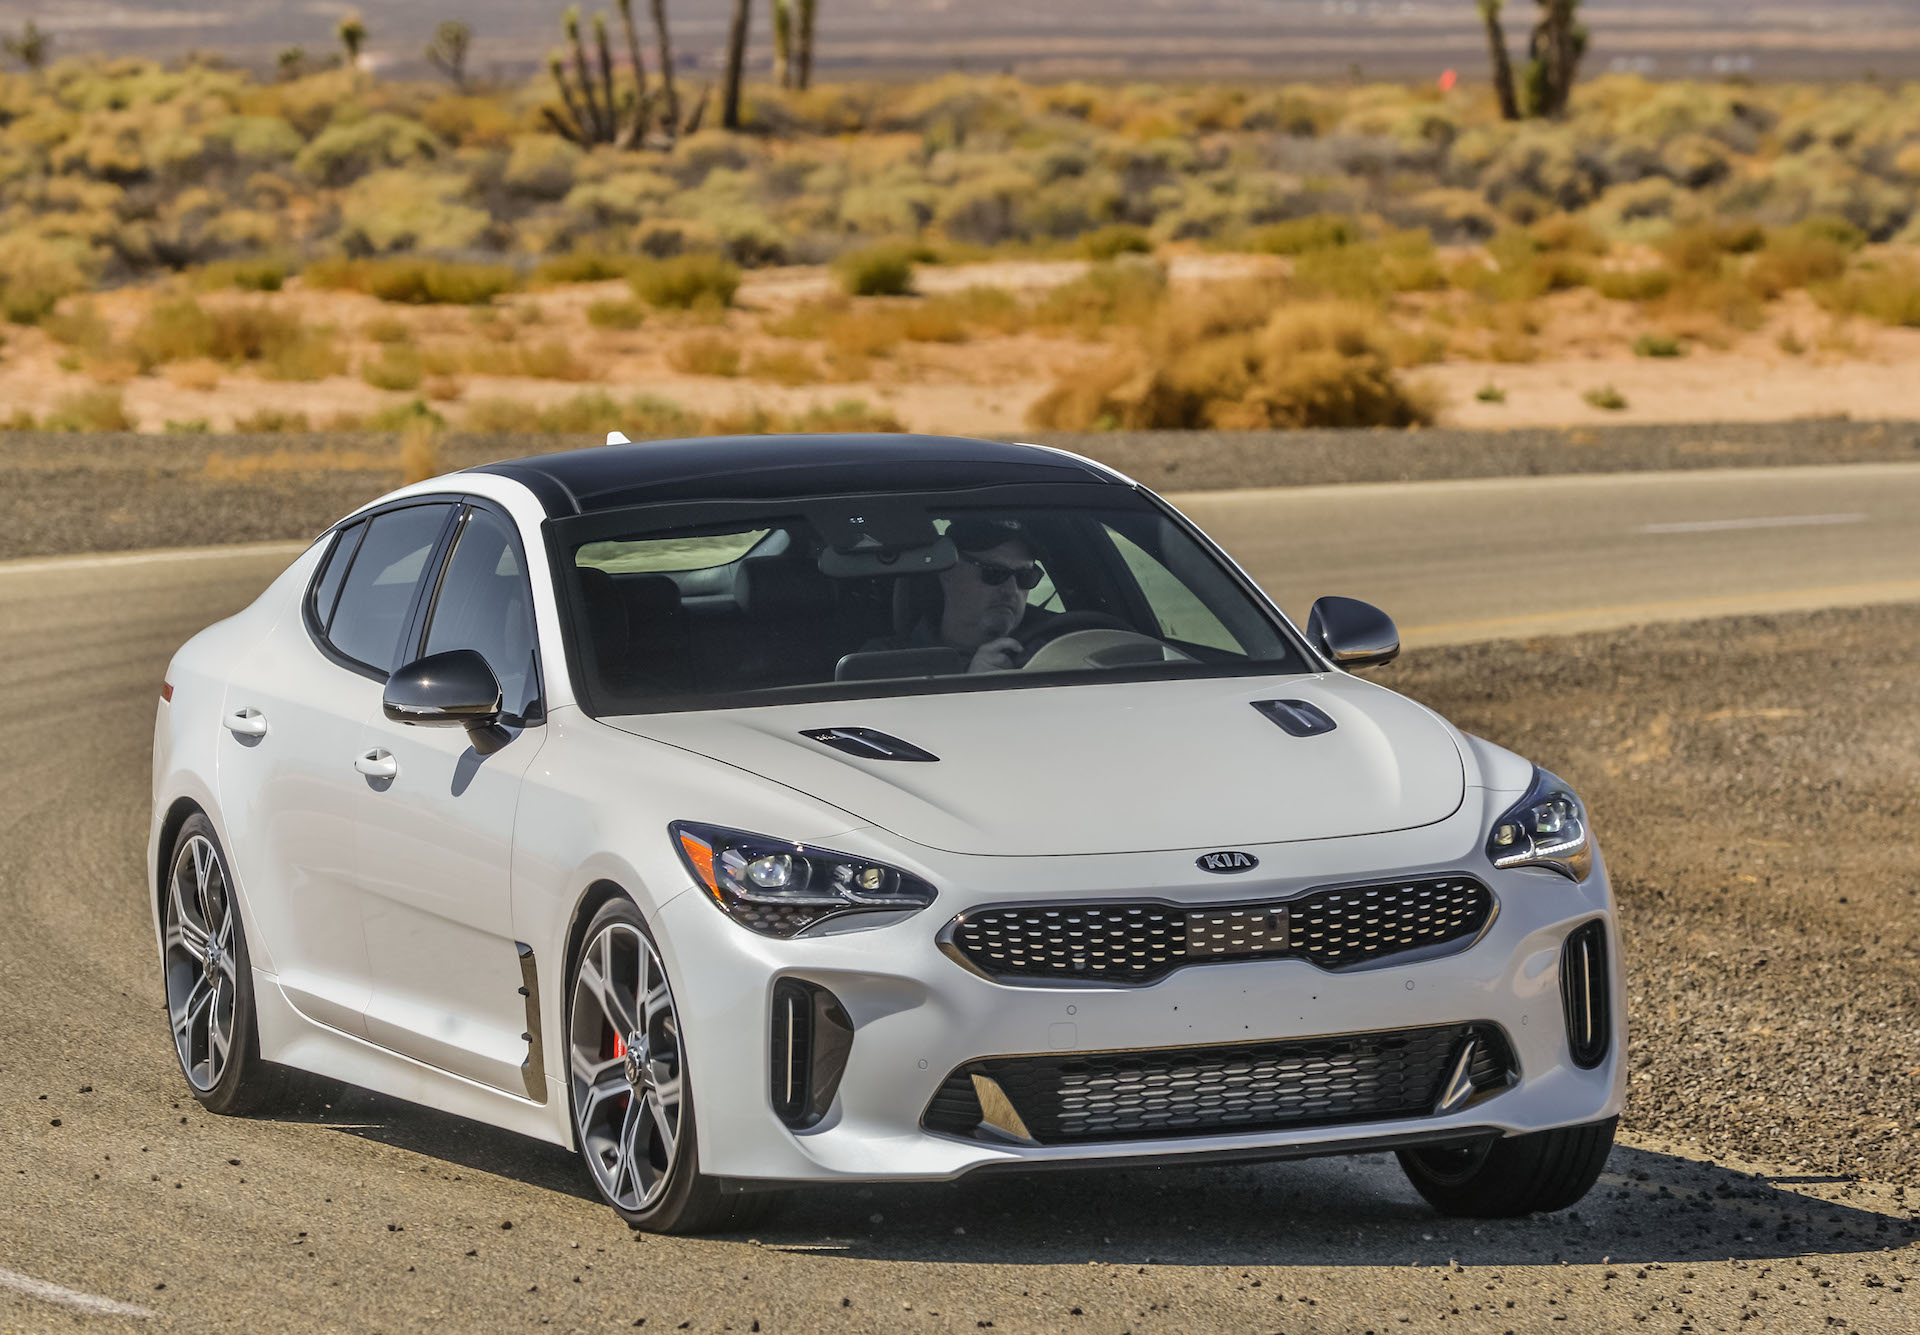 Kia Stinger Wiring Harness Fire Recalled Over Risk